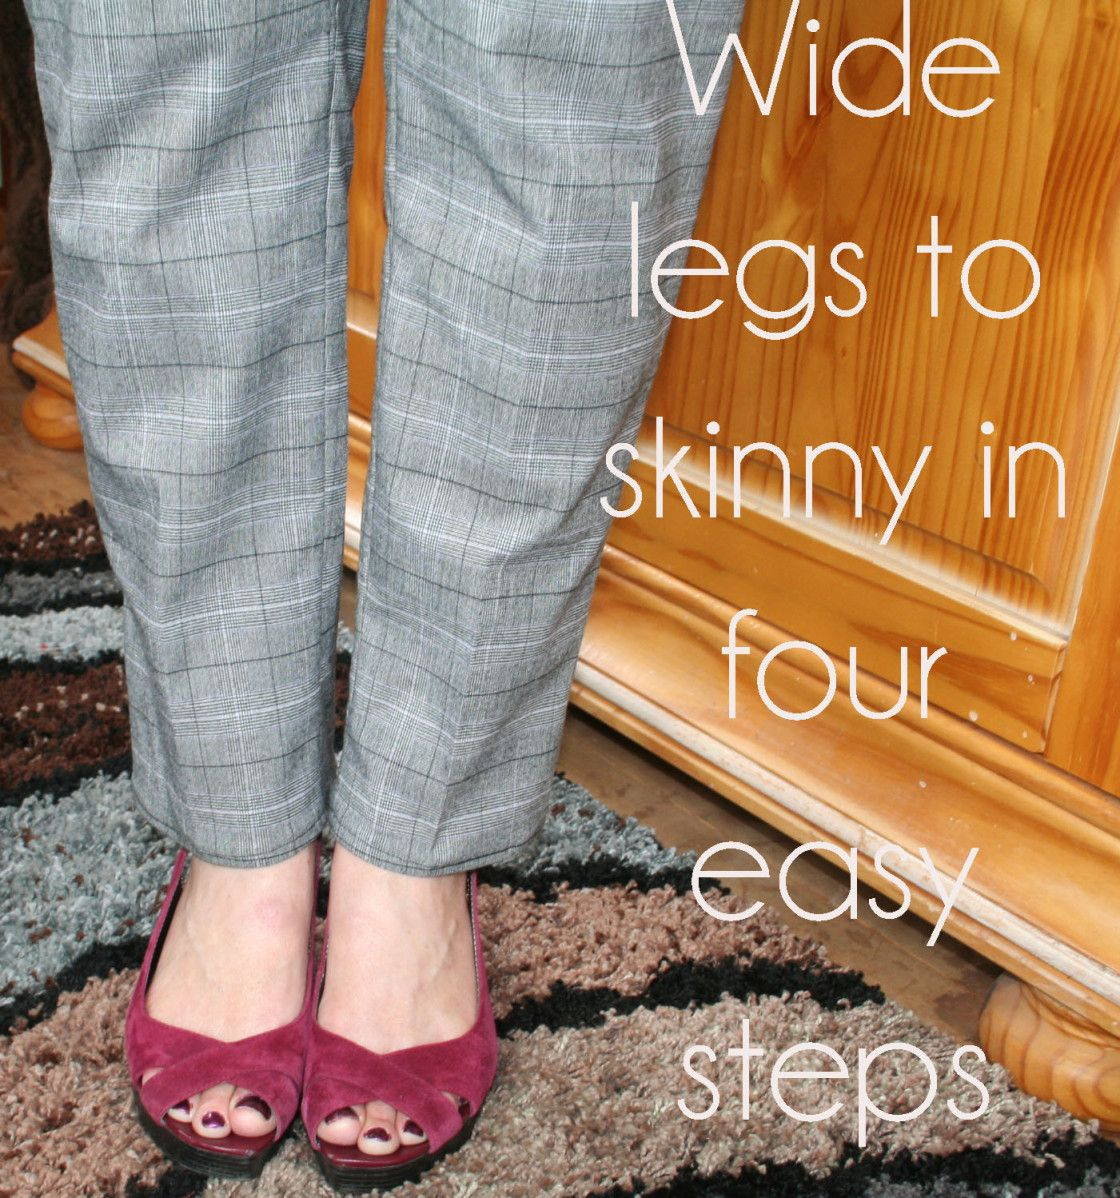 wide legs to skinny in four easy steps